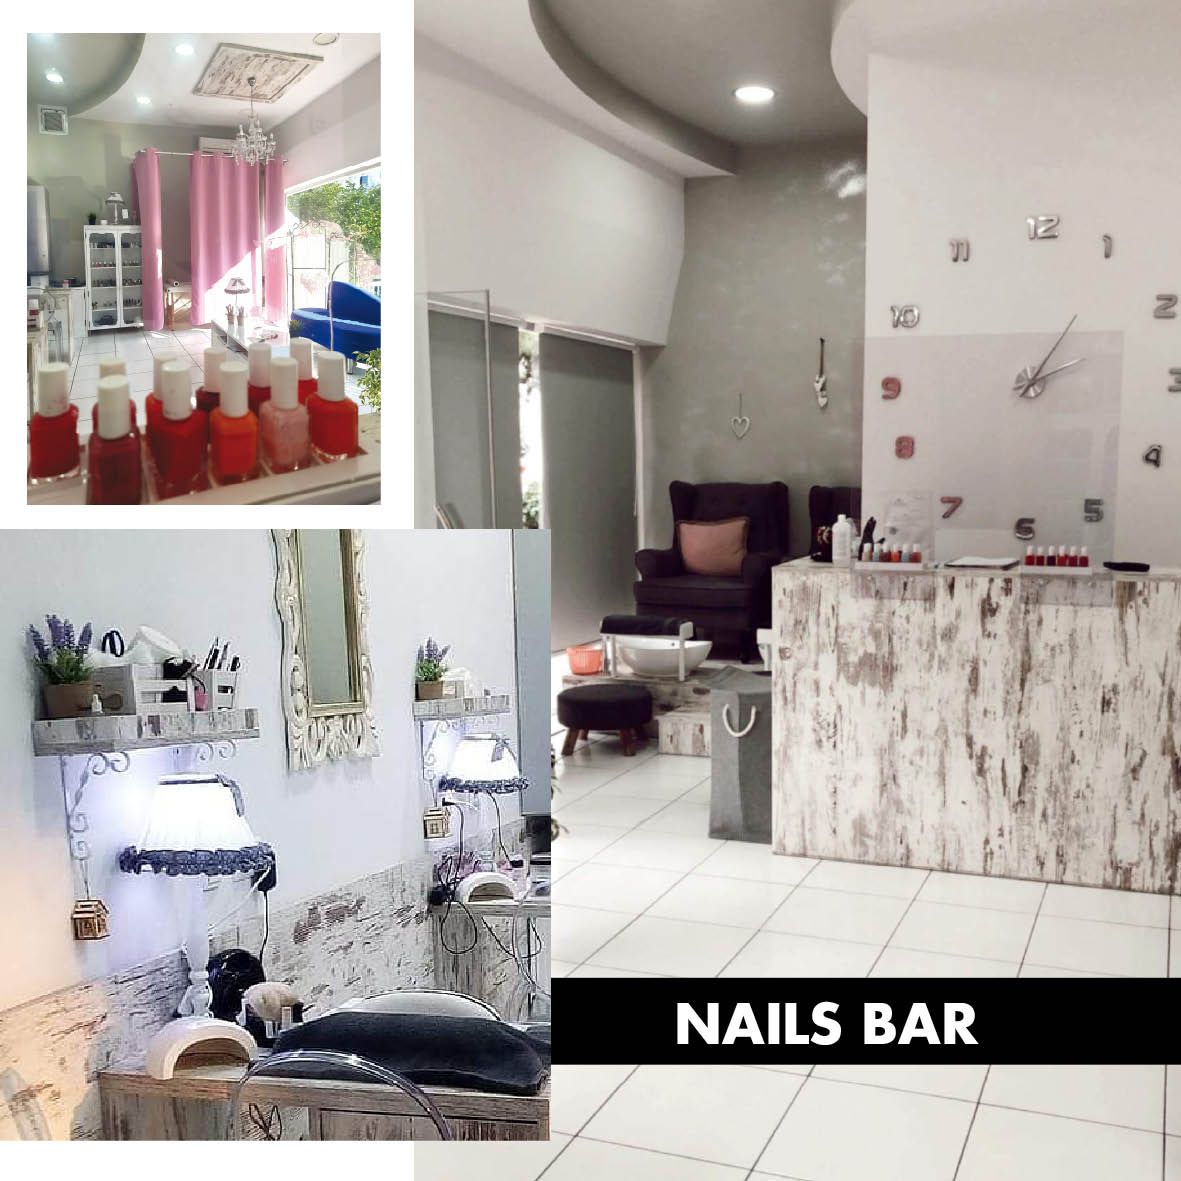 NAILS BAR BY G.V.